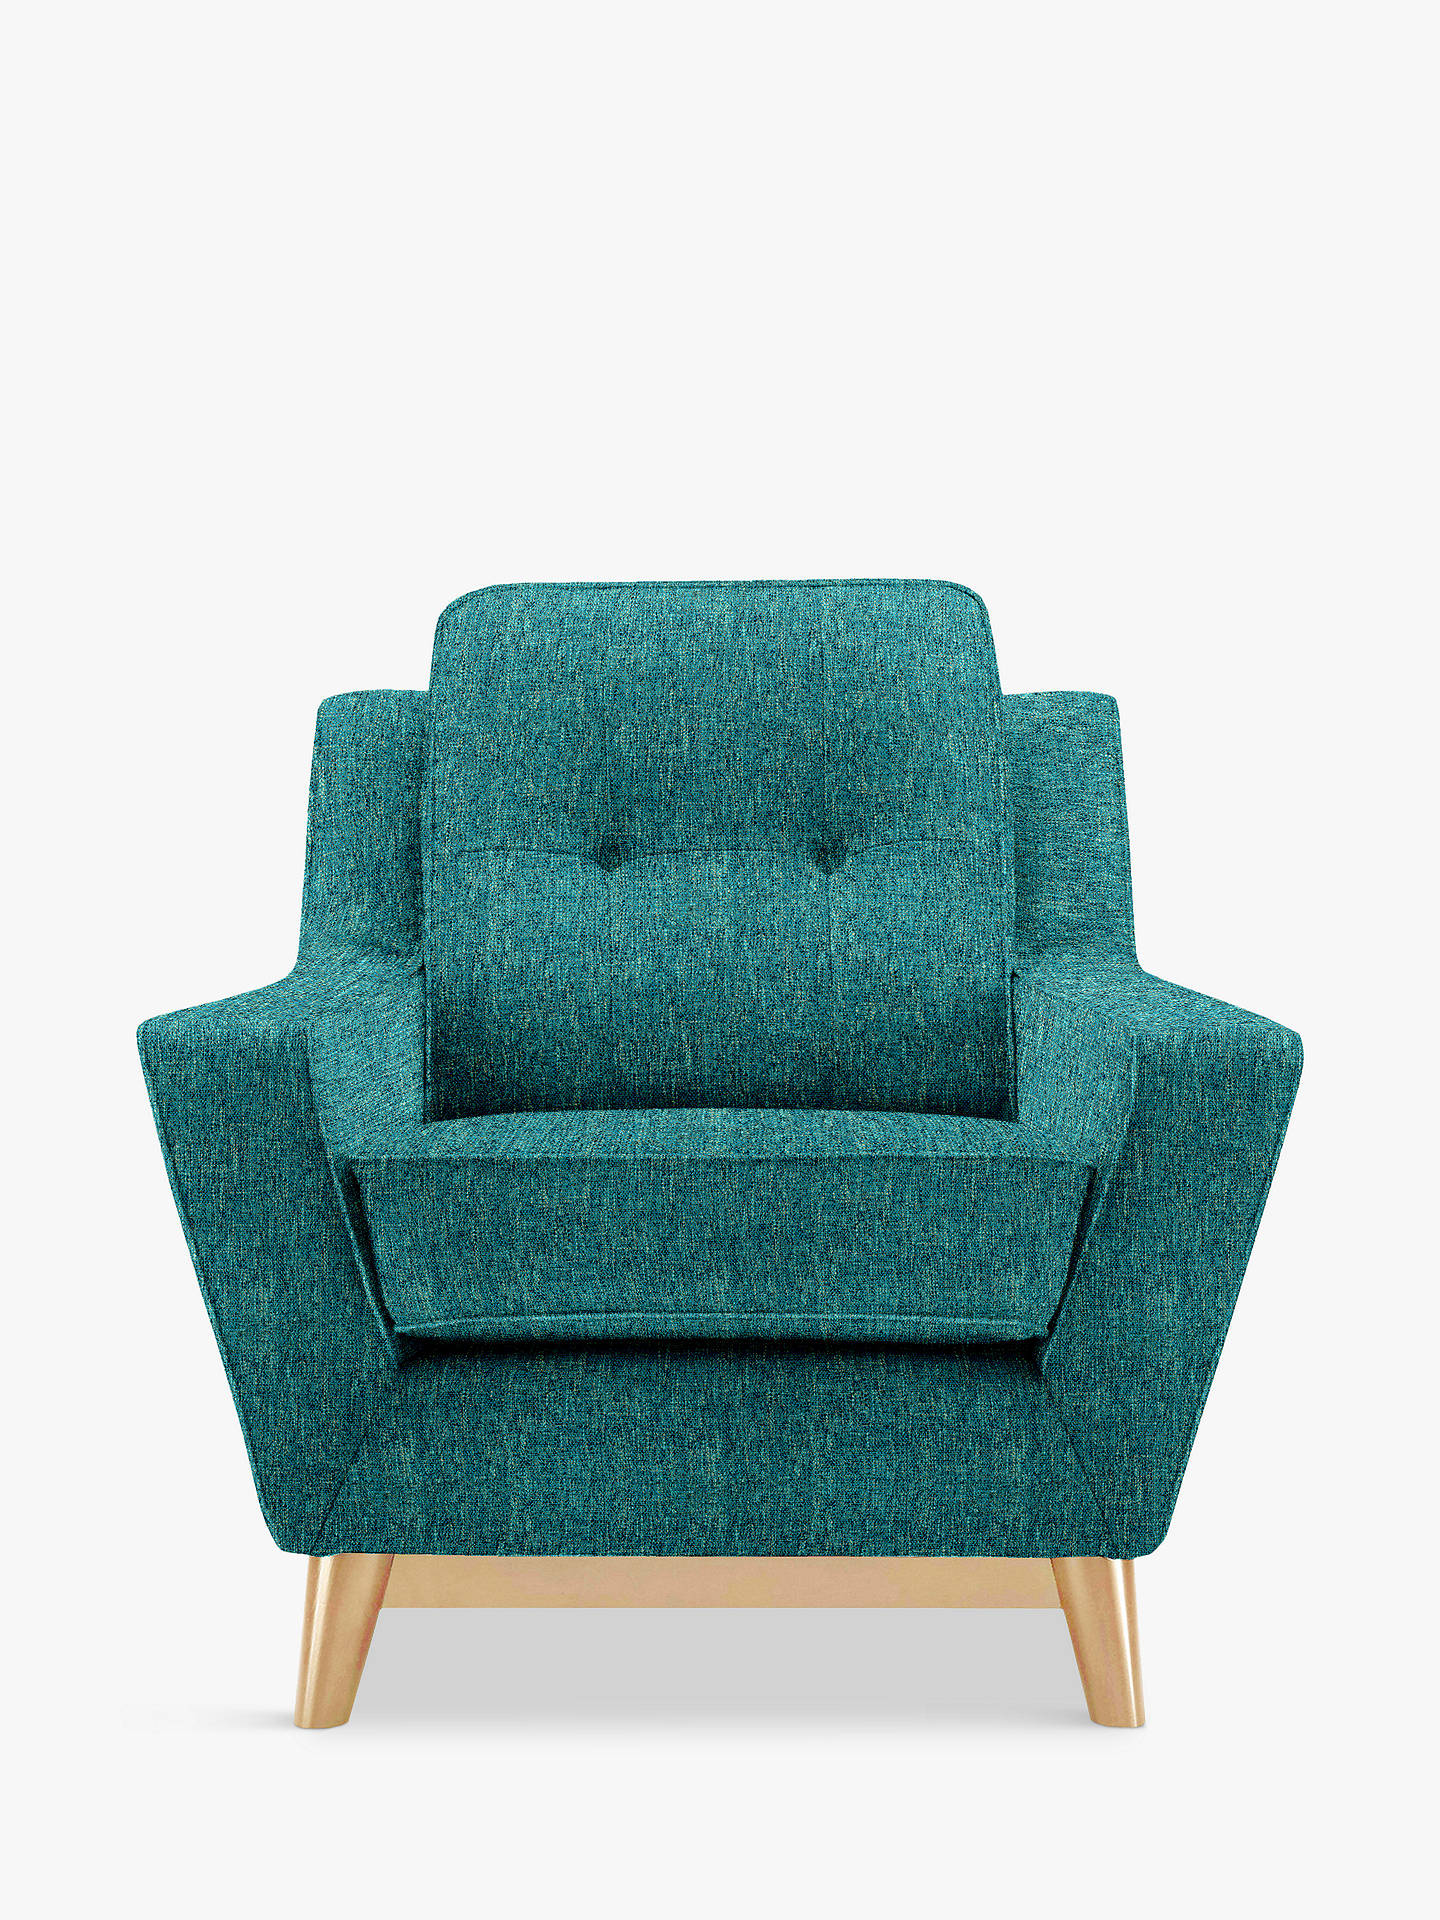 Remarkable G Plan Vintage The Fifty Three Armchair Piero Teal Download Free Architecture Designs Scobabritishbridgeorg